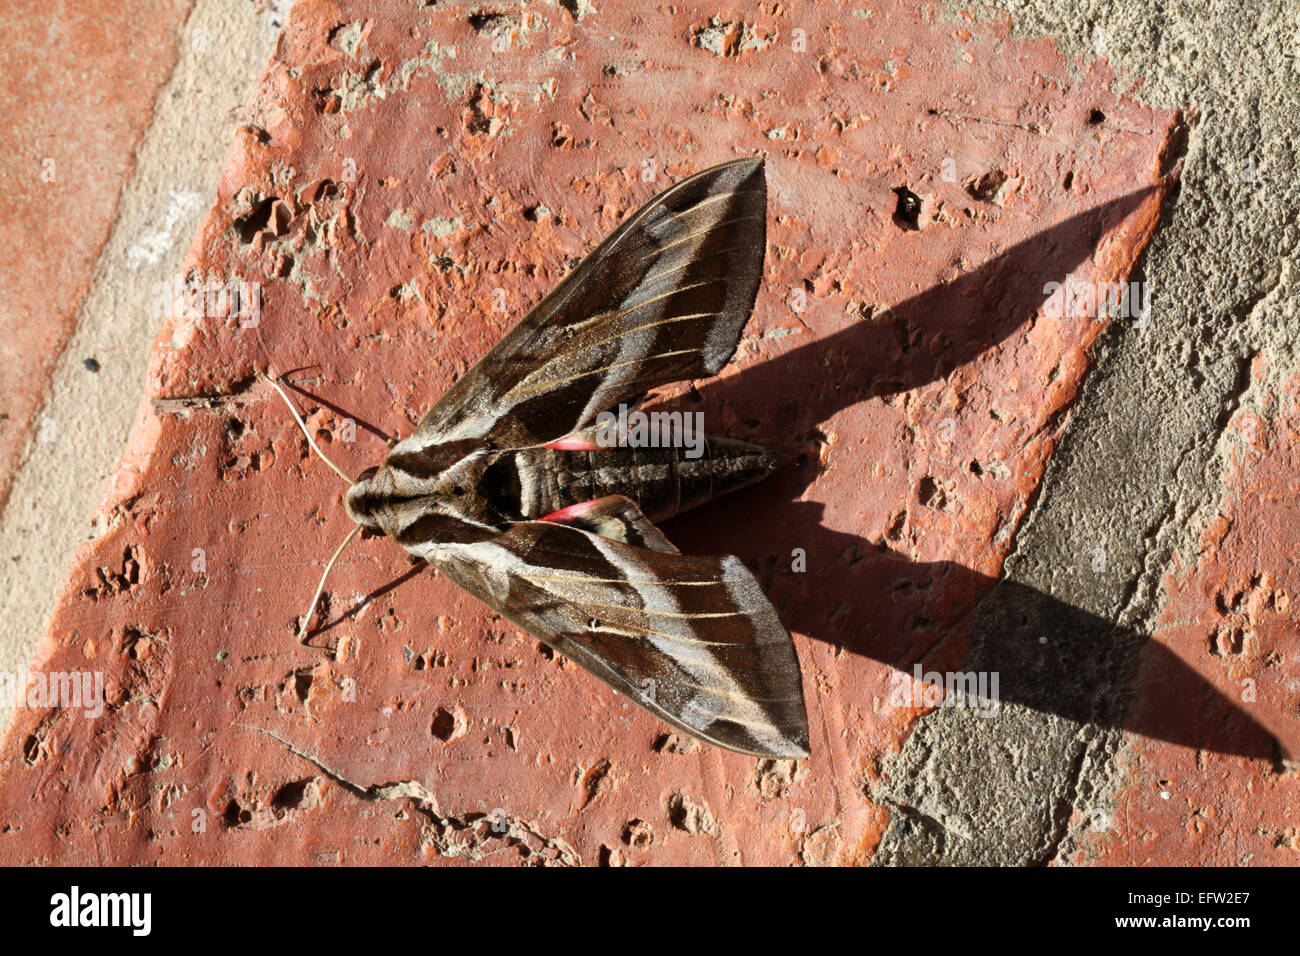 A large brown Hawk Moth resting on a brick floor background - Stock Image